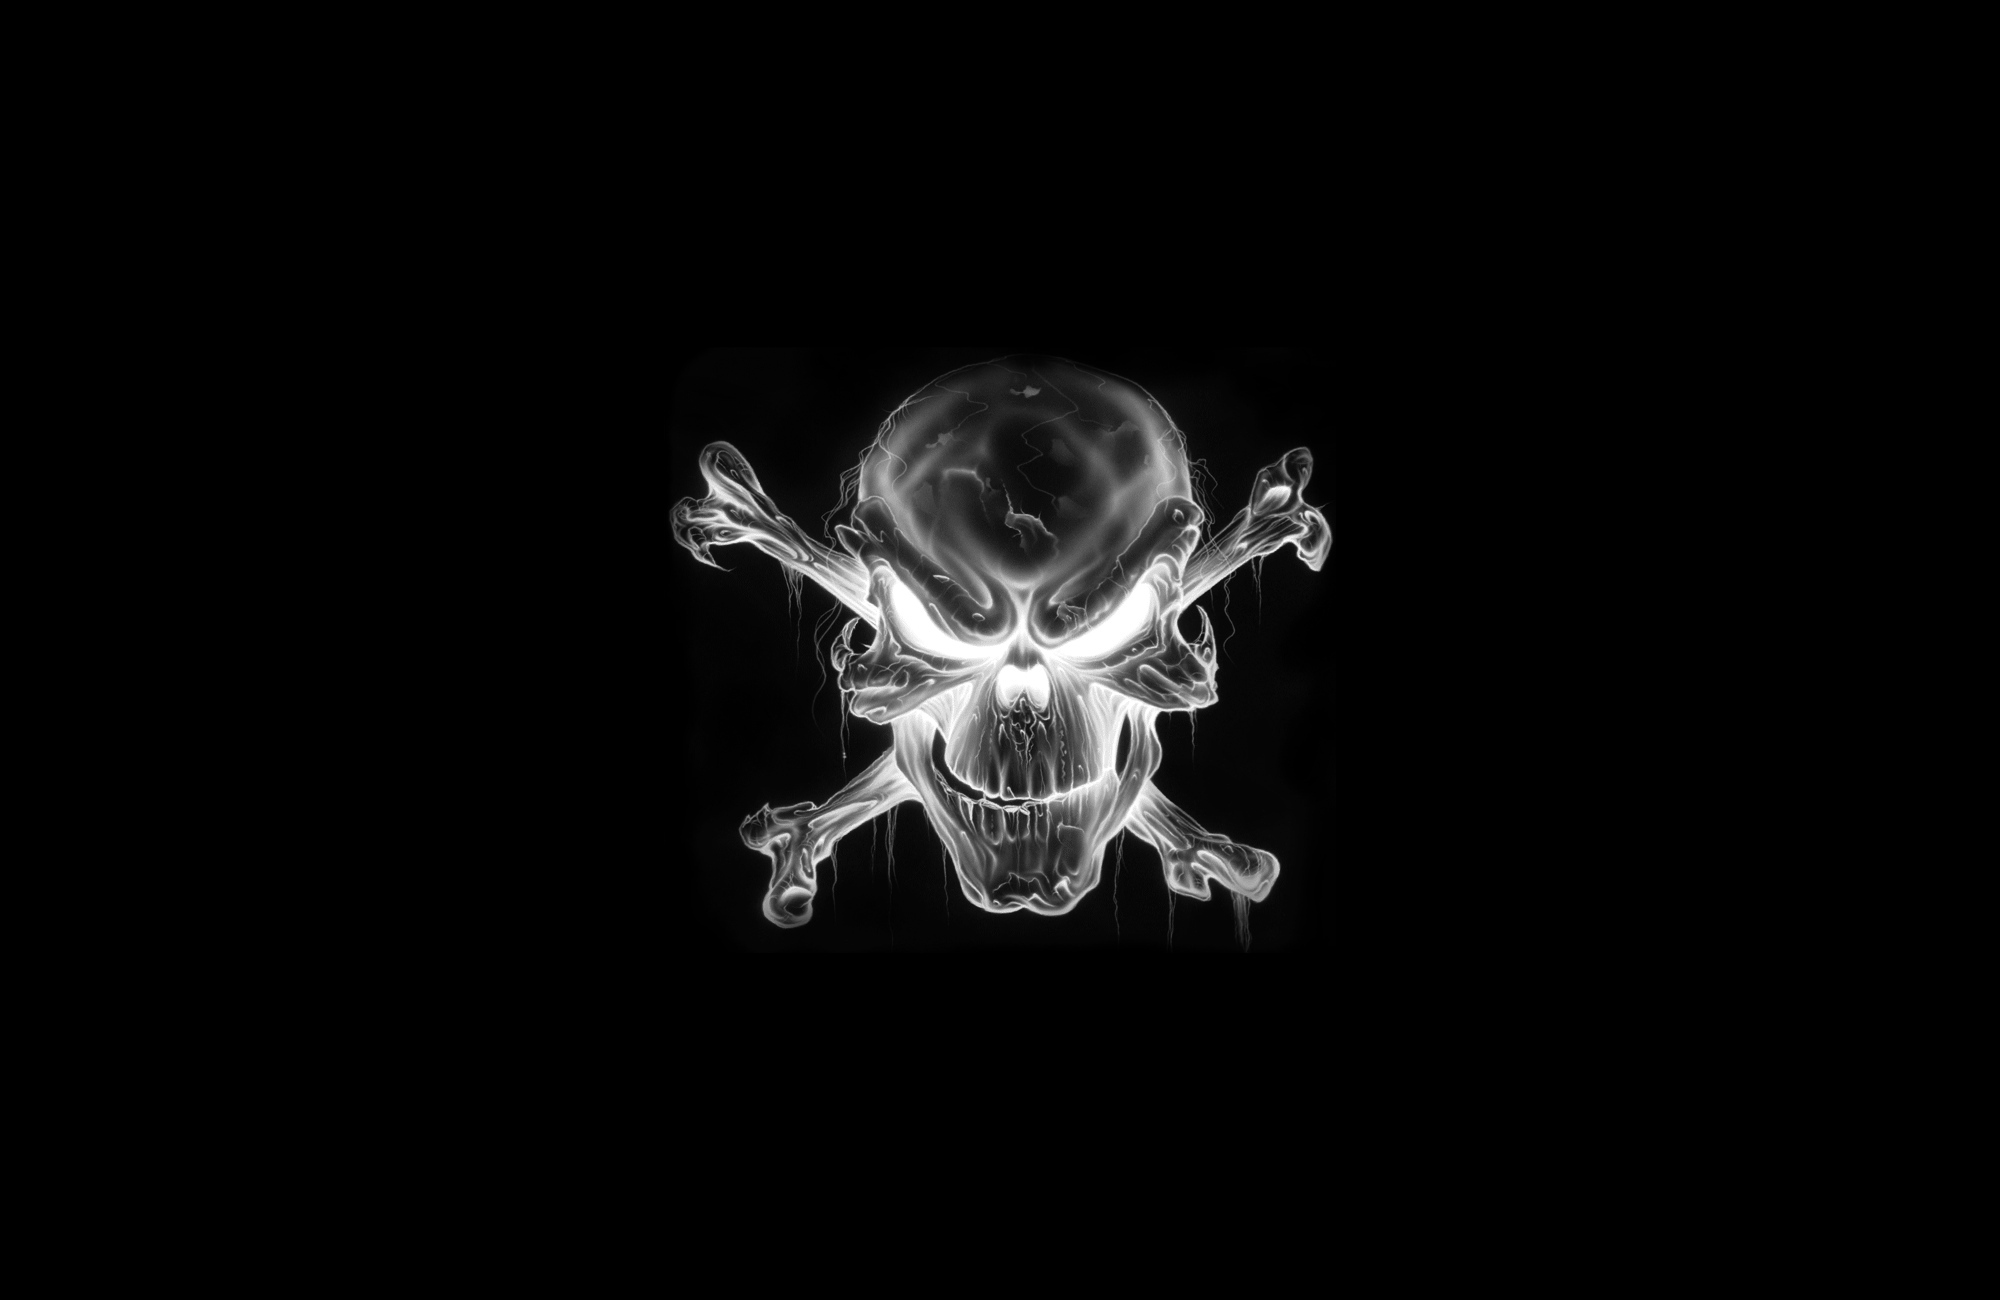 evil skuLL wallpaper   ForWallpapercom 2000x1300